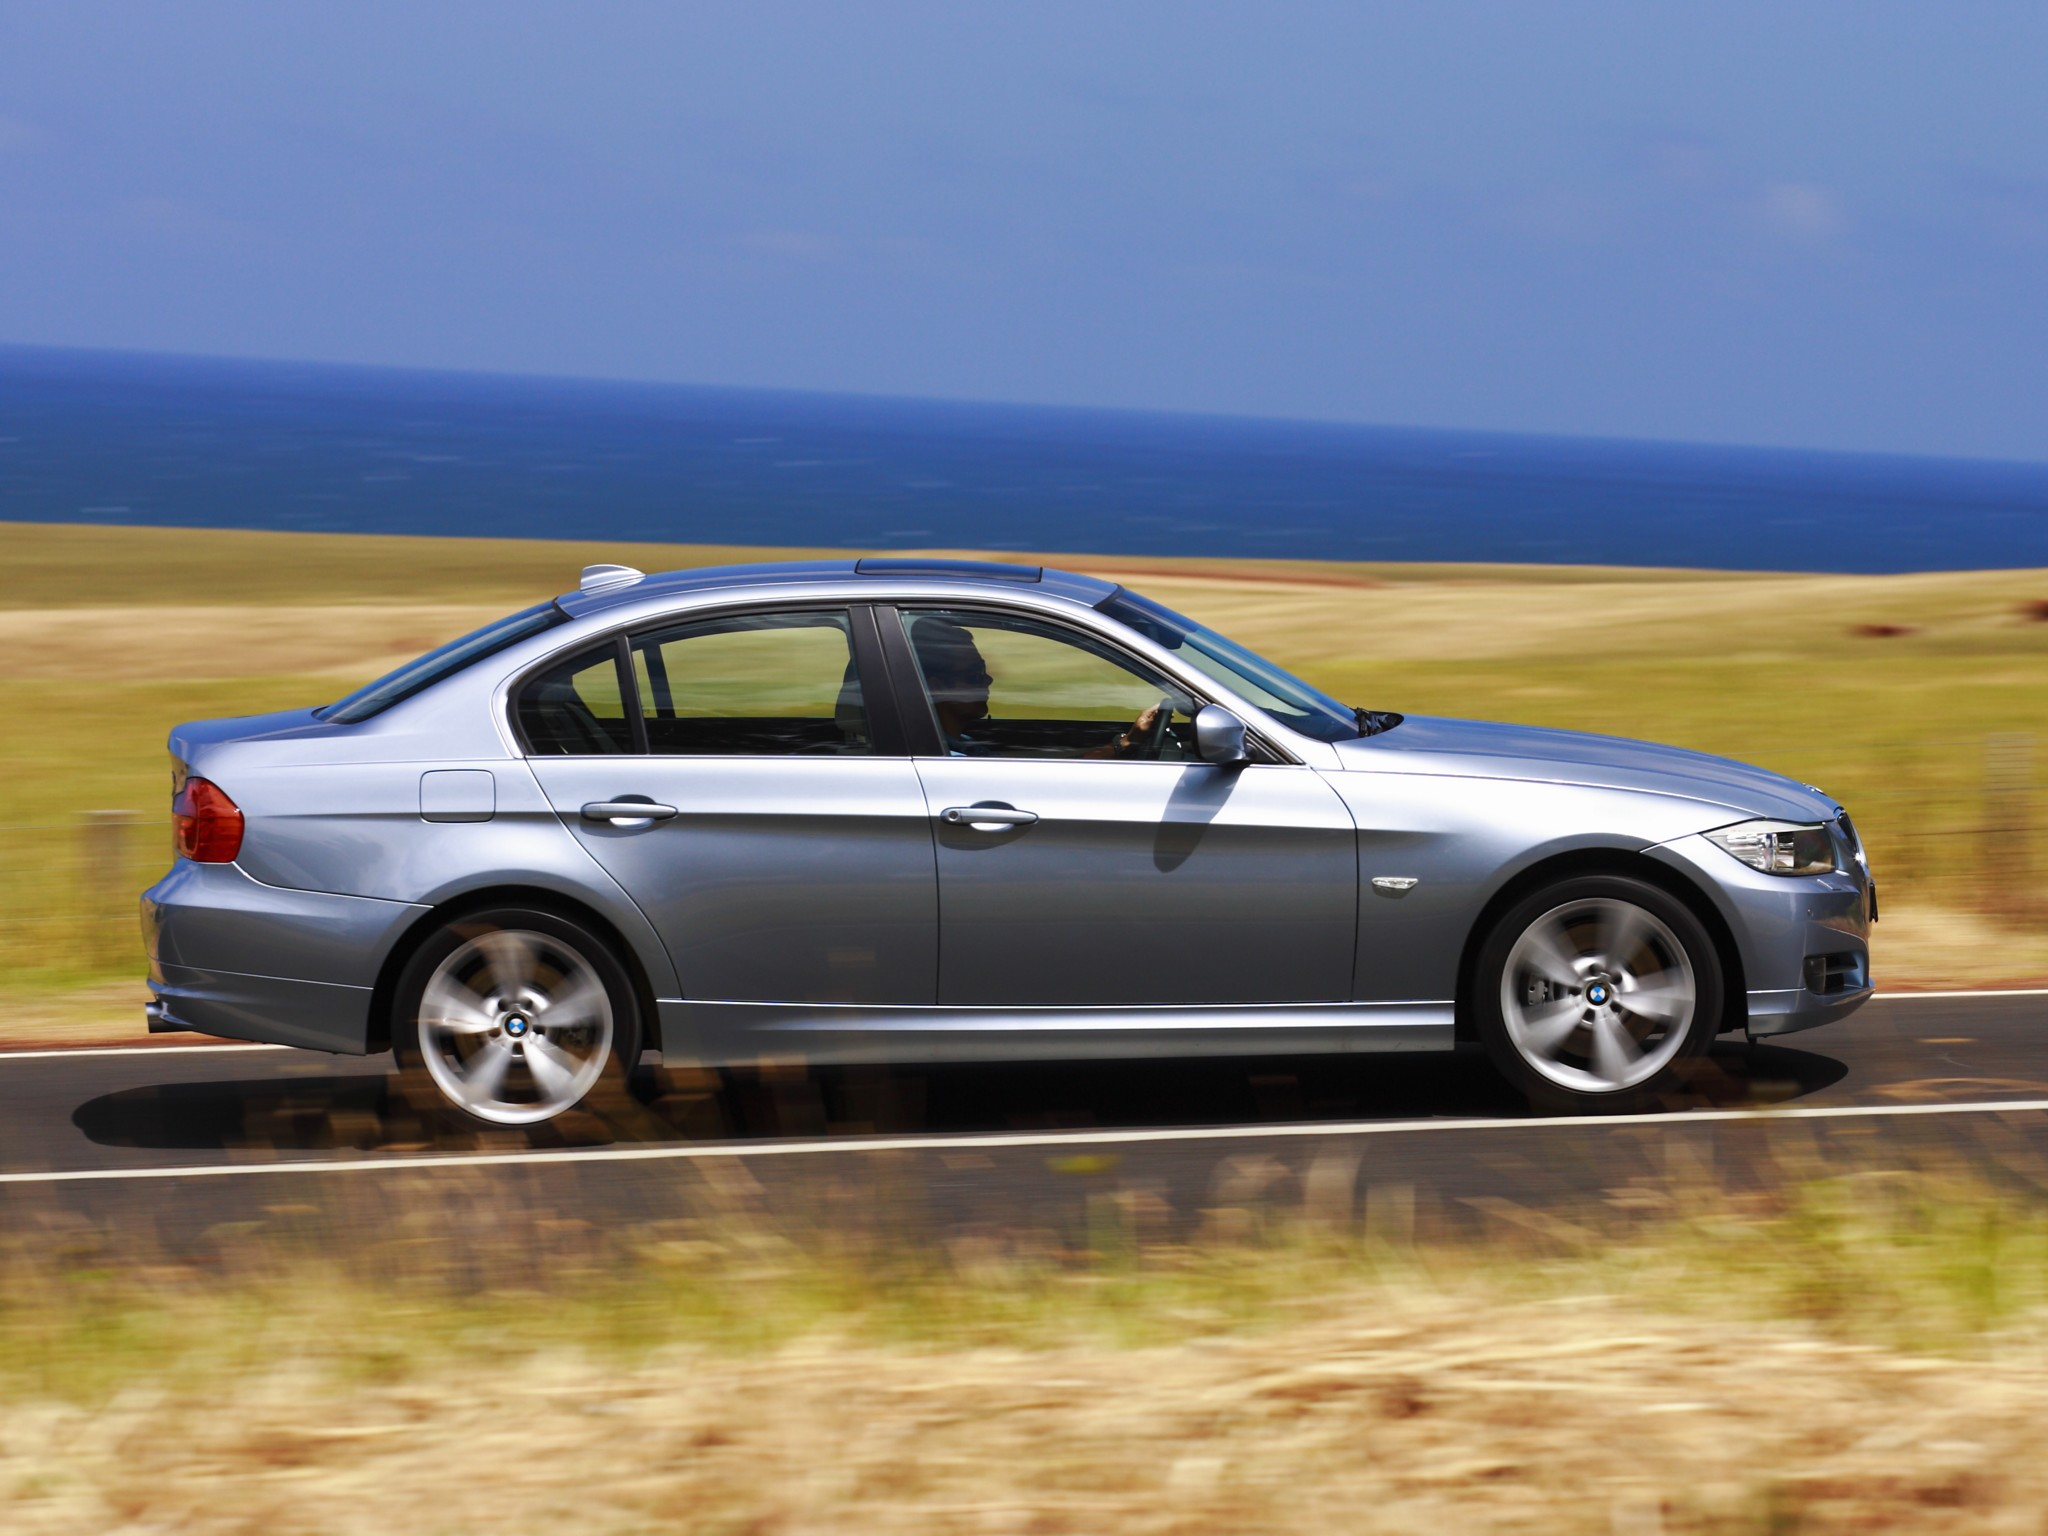 BMW 3 series 335is 2008 photo - 6